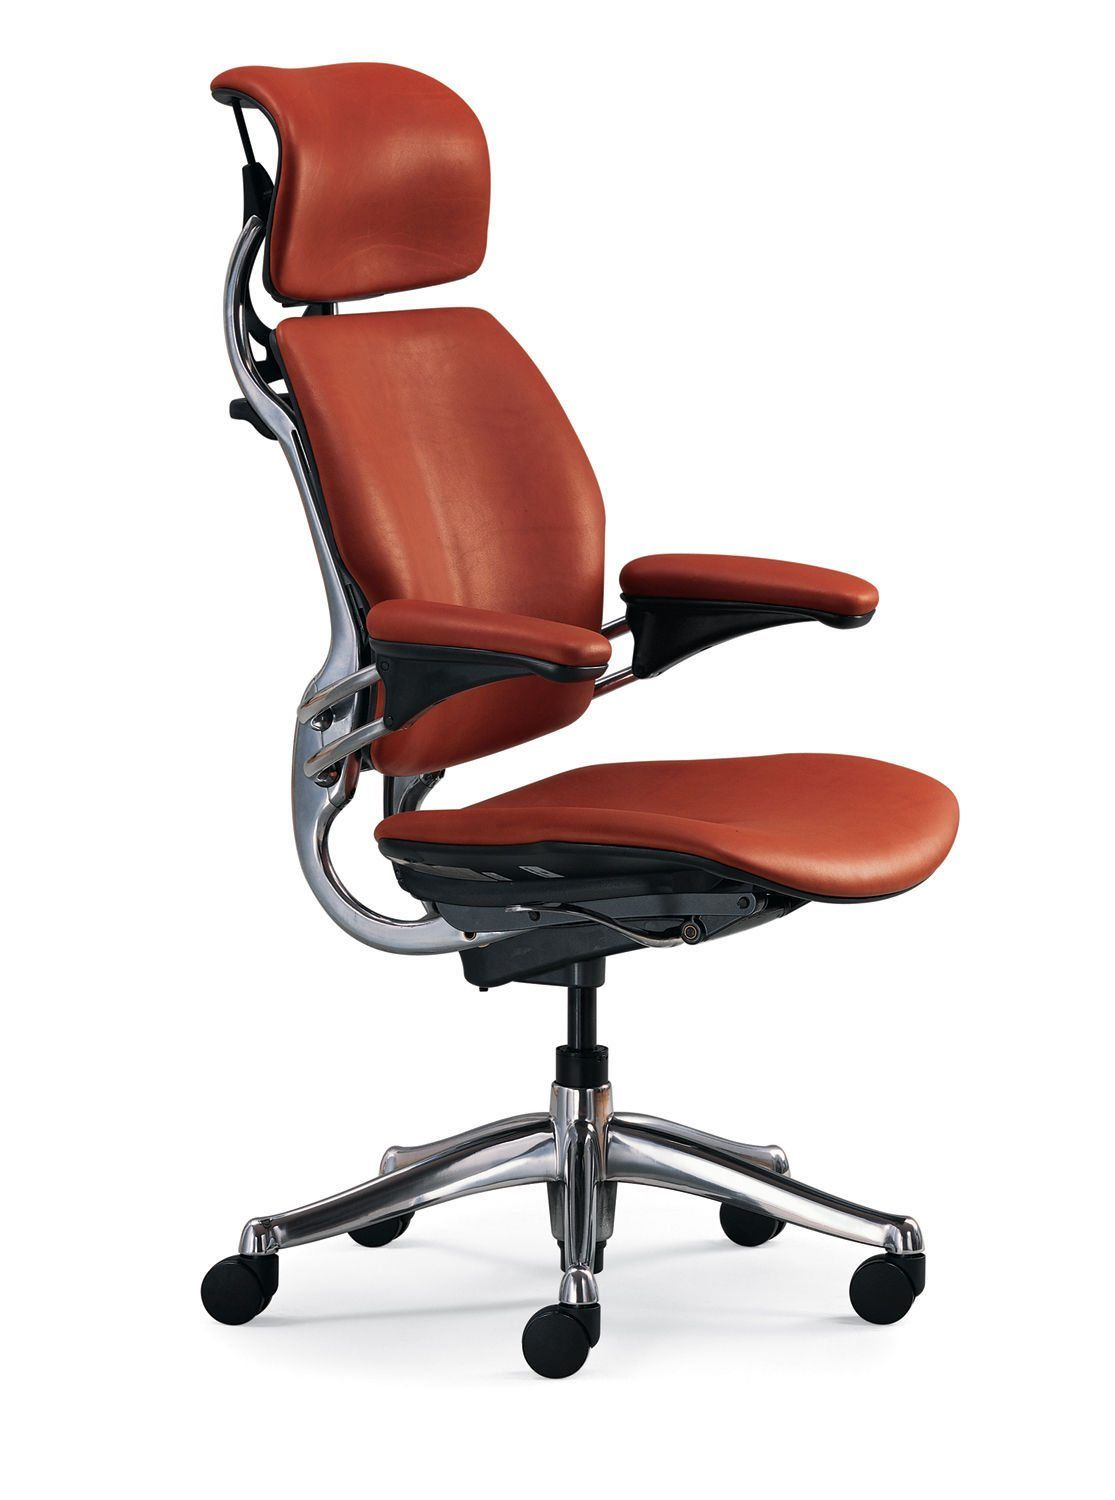 Design Your Own Leather Humanscale Freedom Chair Selecting From Gorgeous High End Leathers And The Most Highly Desired Options